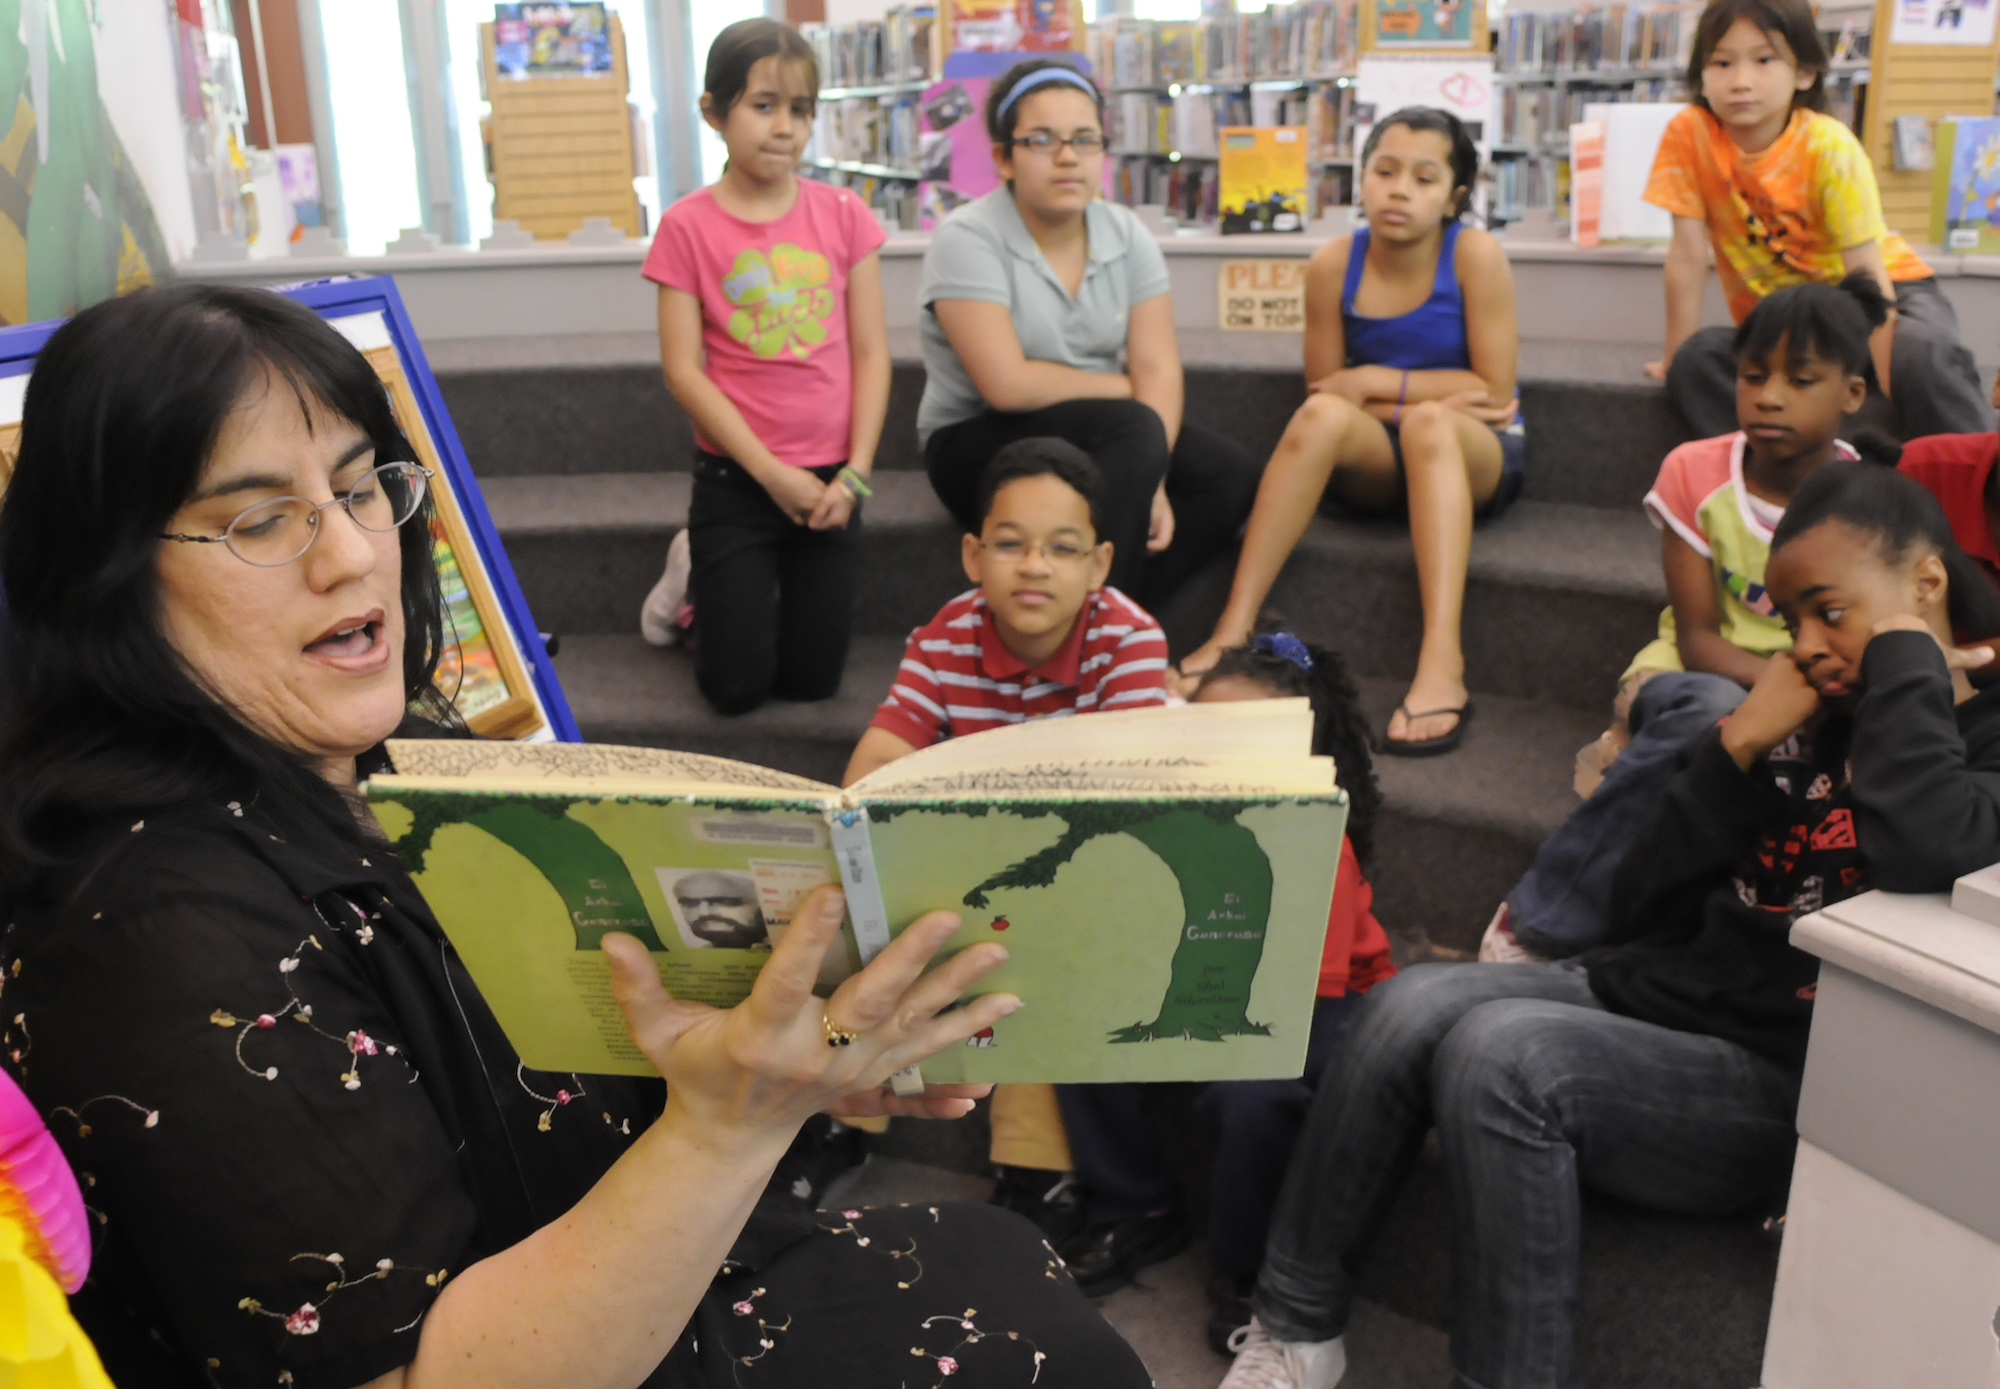 a woman with glasses holds open a copy of the giving tree with a green cover. Kids sit on risers in the background looking at the book